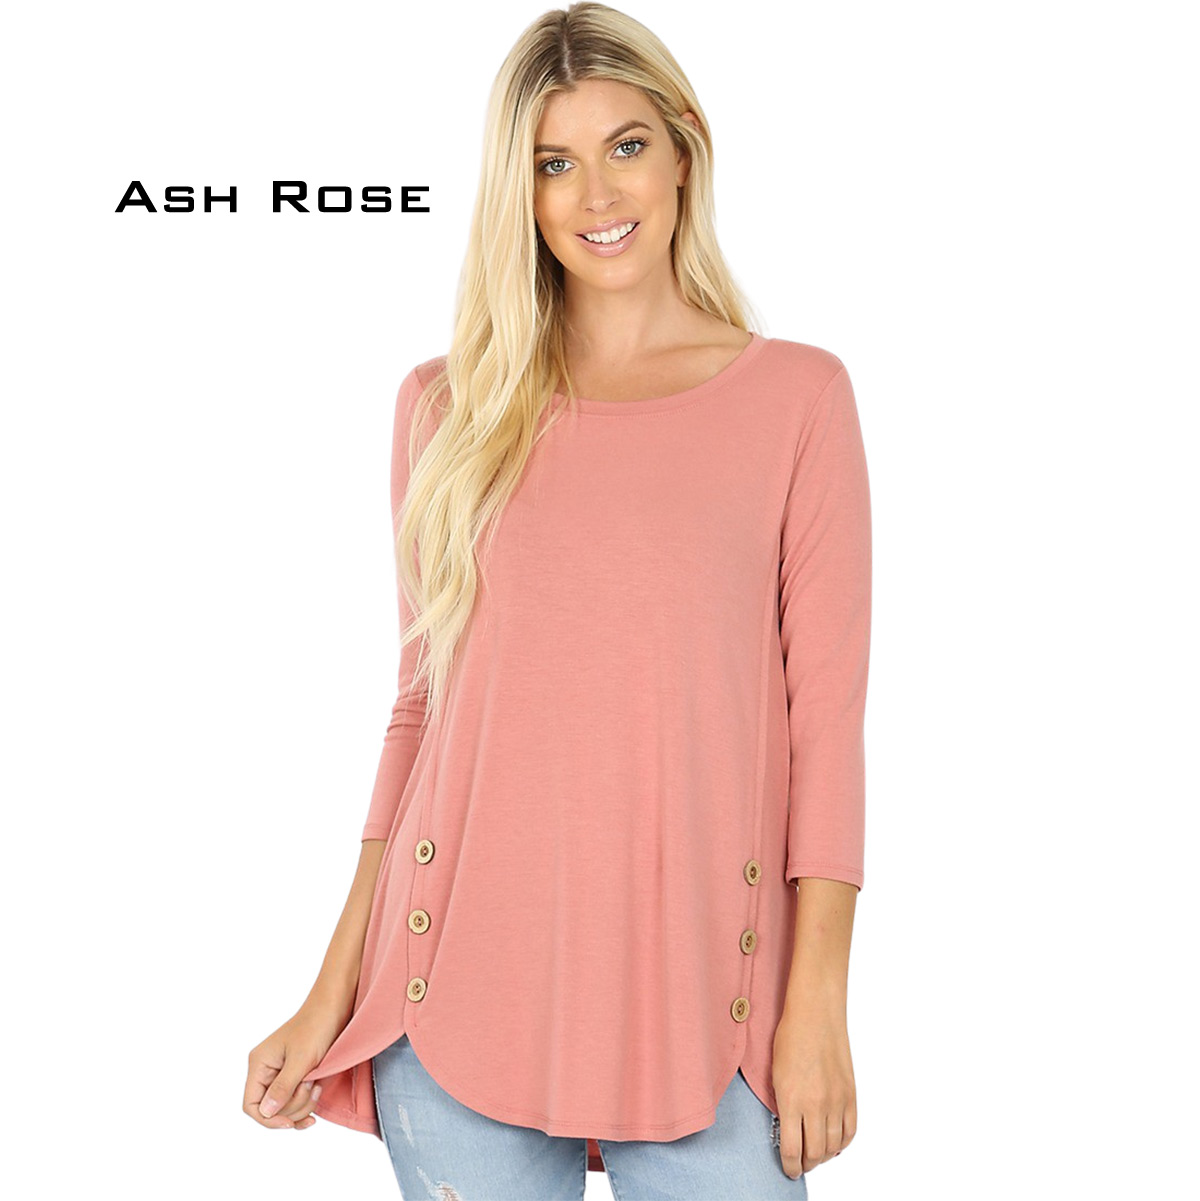 ASH ROSE 3/4 Sleeve Side Wood Buttons Top 2032